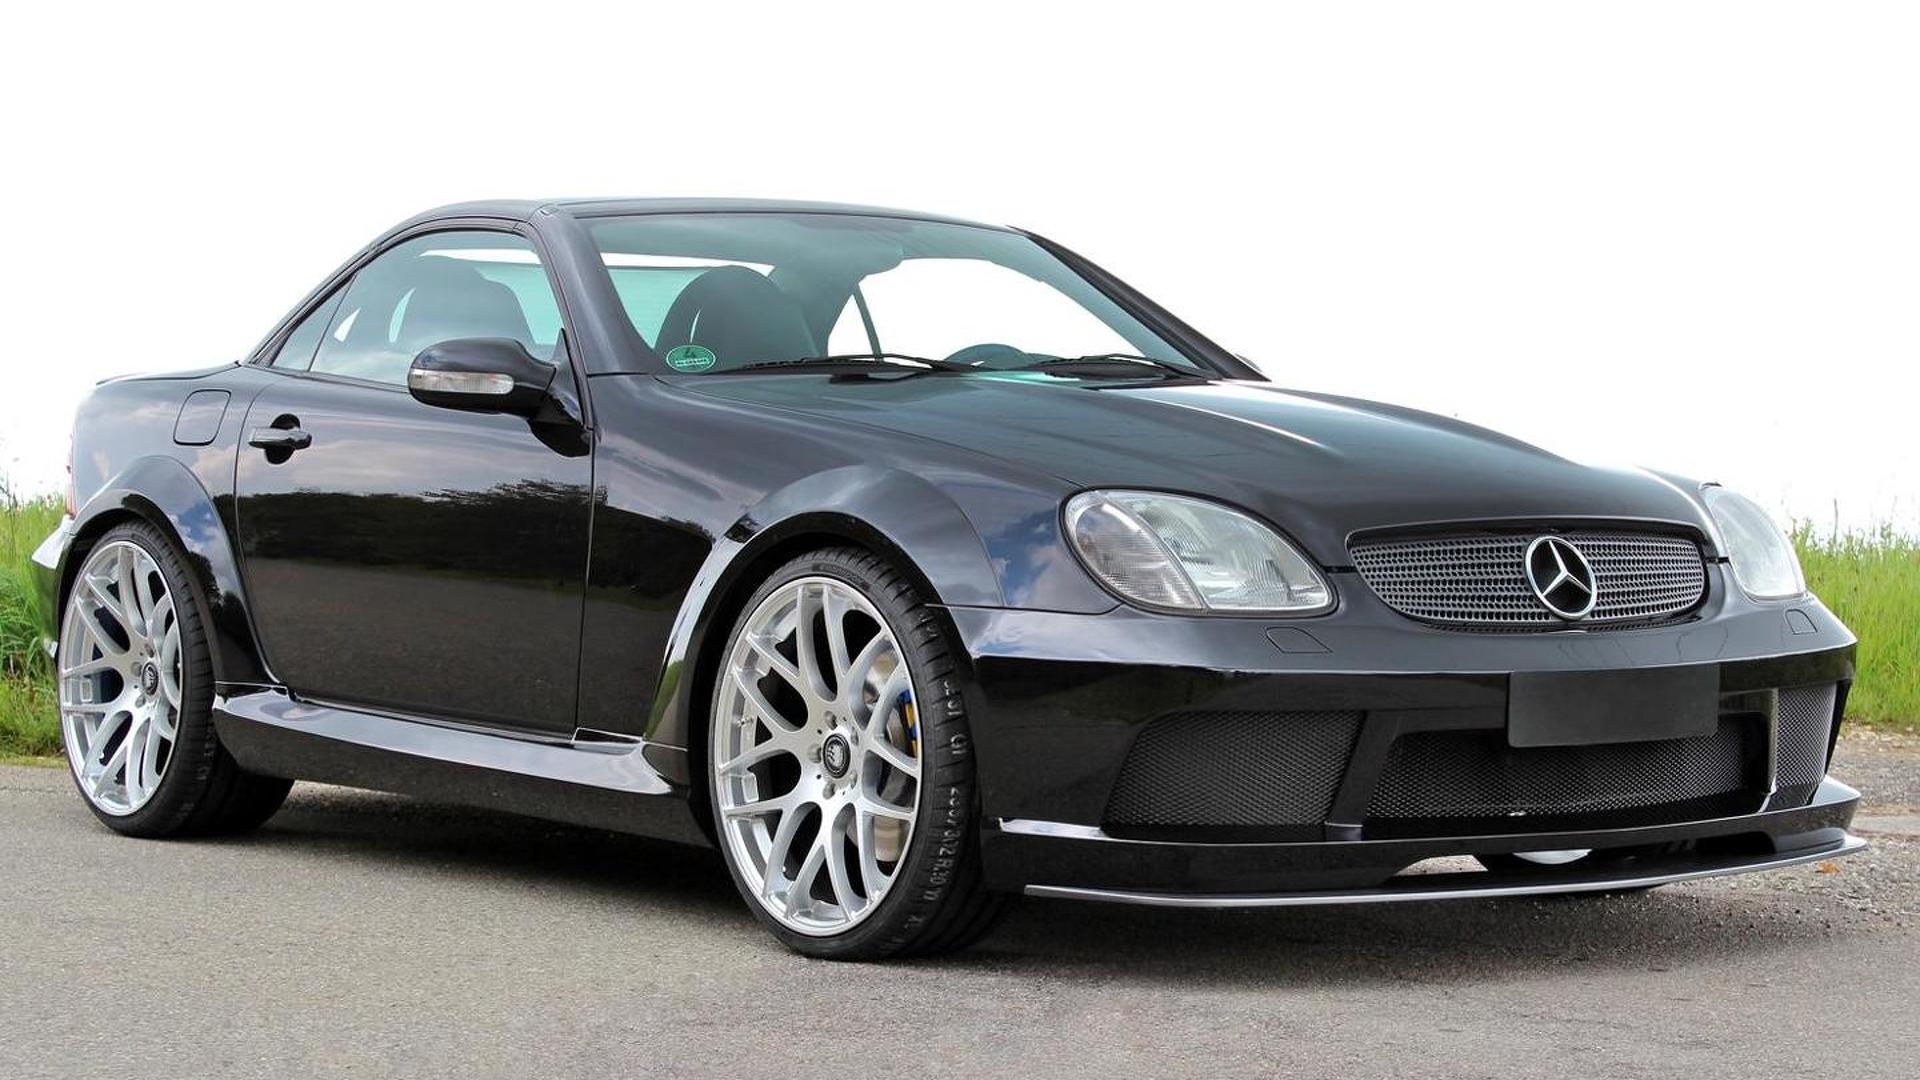 lumma tuning freshens up mercedes benz slk 32 amg r170. Black Bedroom Furniture Sets. Home Design Ideas